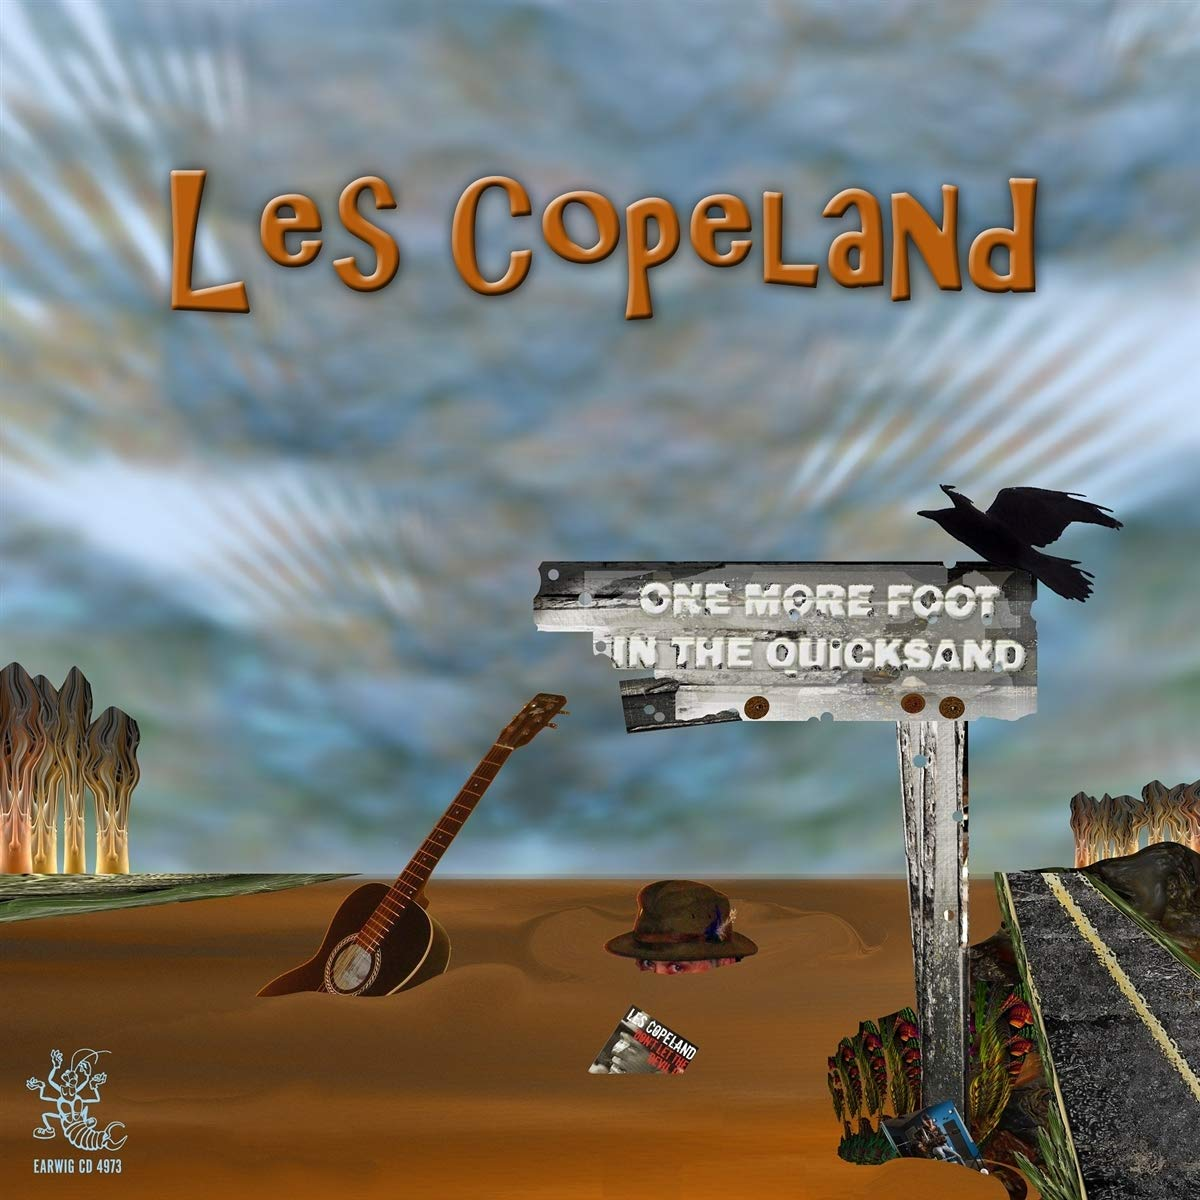 Les Copeland – One More Foot In The Quicksand (2017) [FLAC]